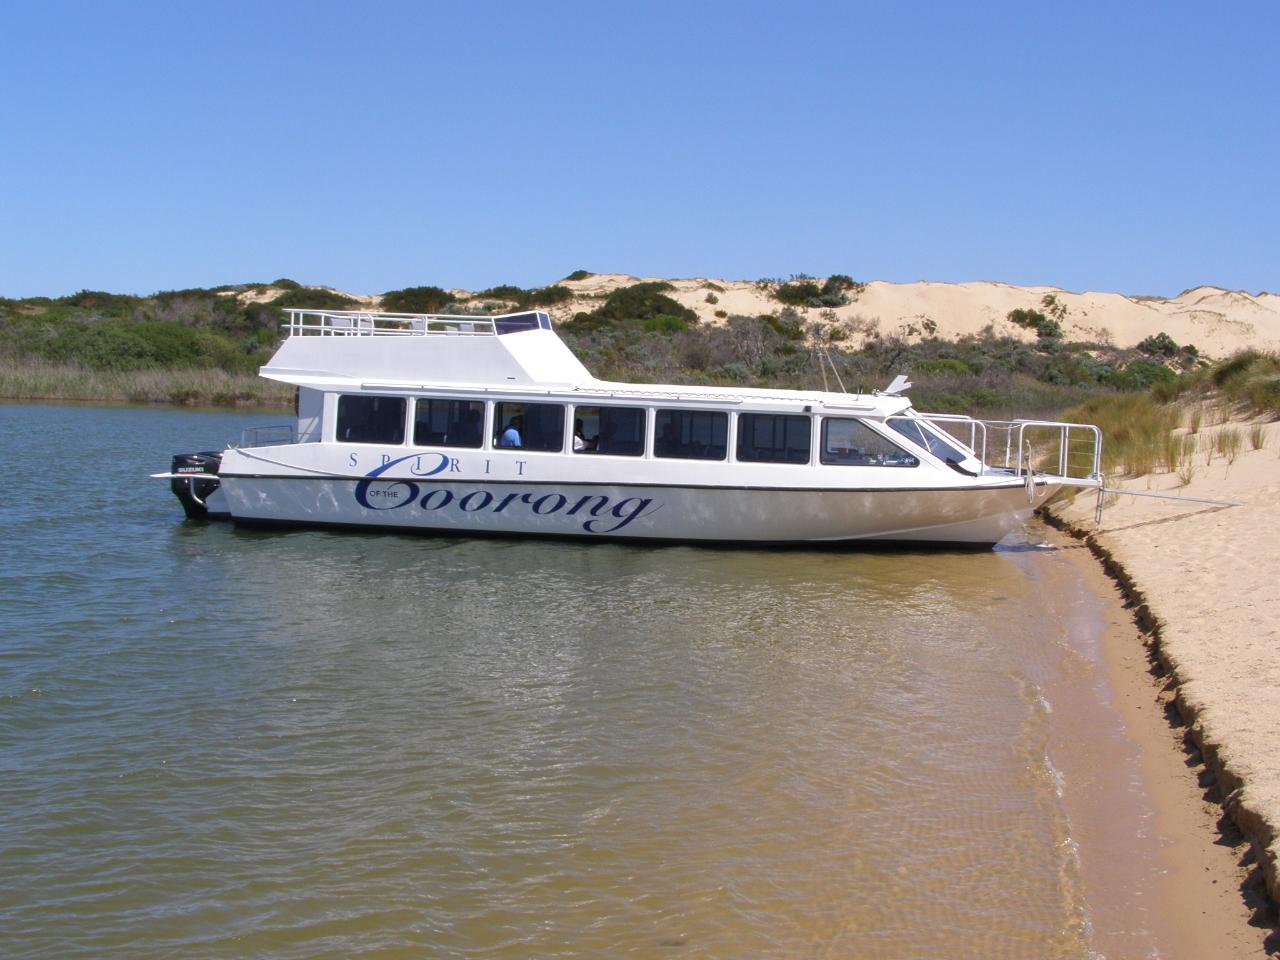 Coorong River Murray Mouth & Fleurieu Peninsula Tour - EX Outer Harbor & Adelaide CBD